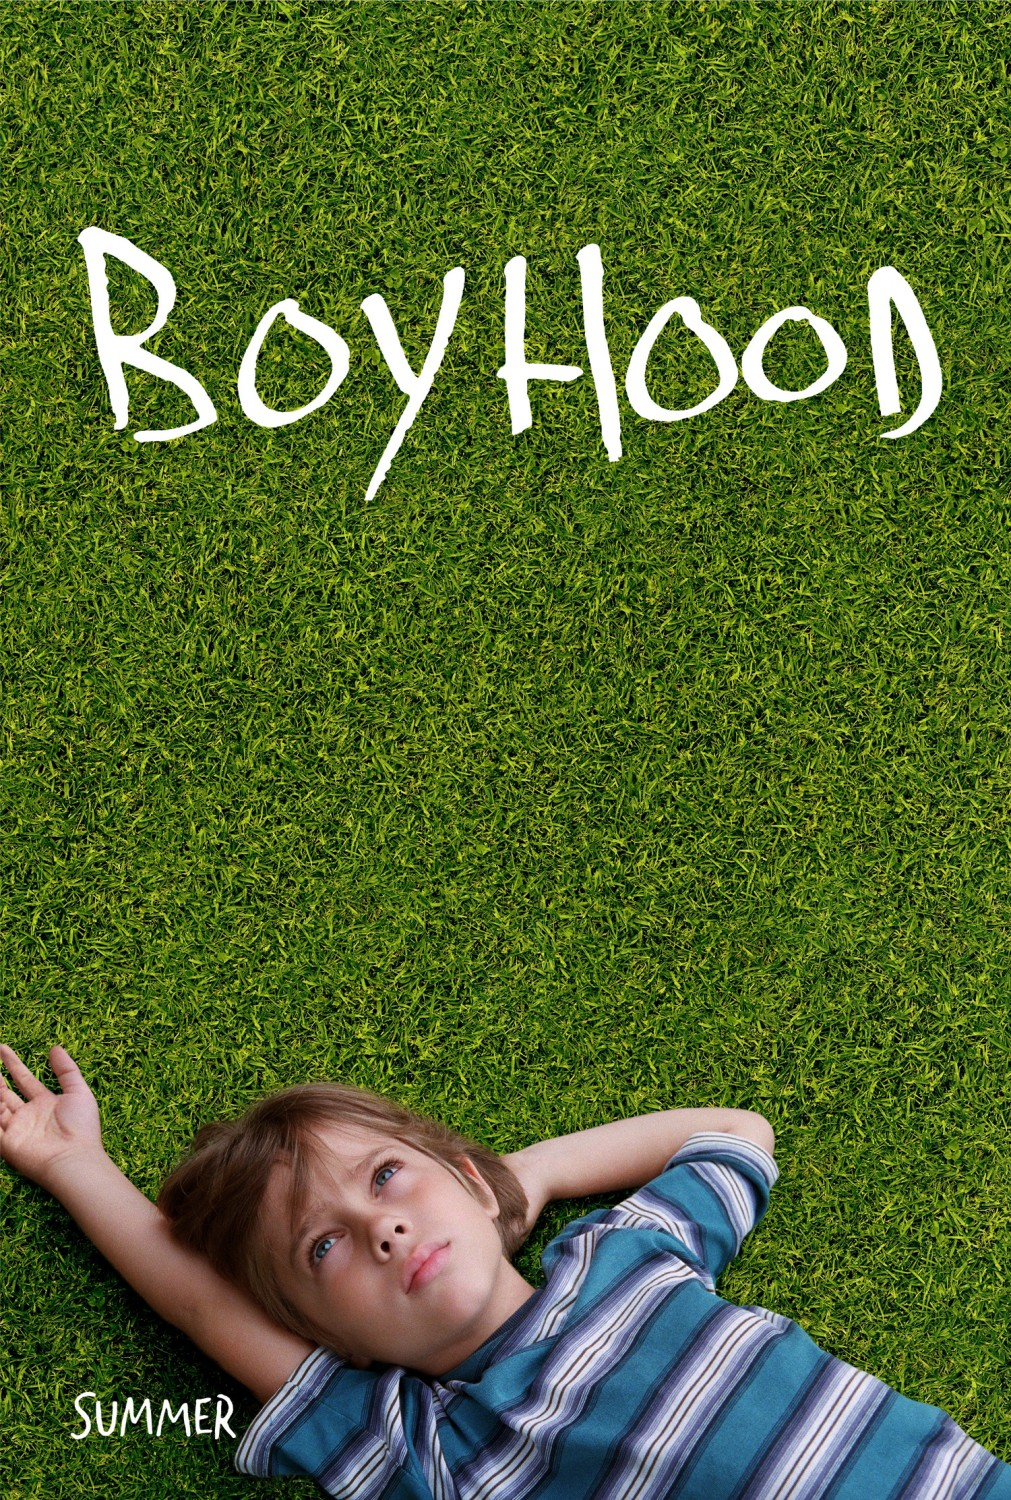 Boyhood, le superprojet méga-nostalgique de Richard Linklater